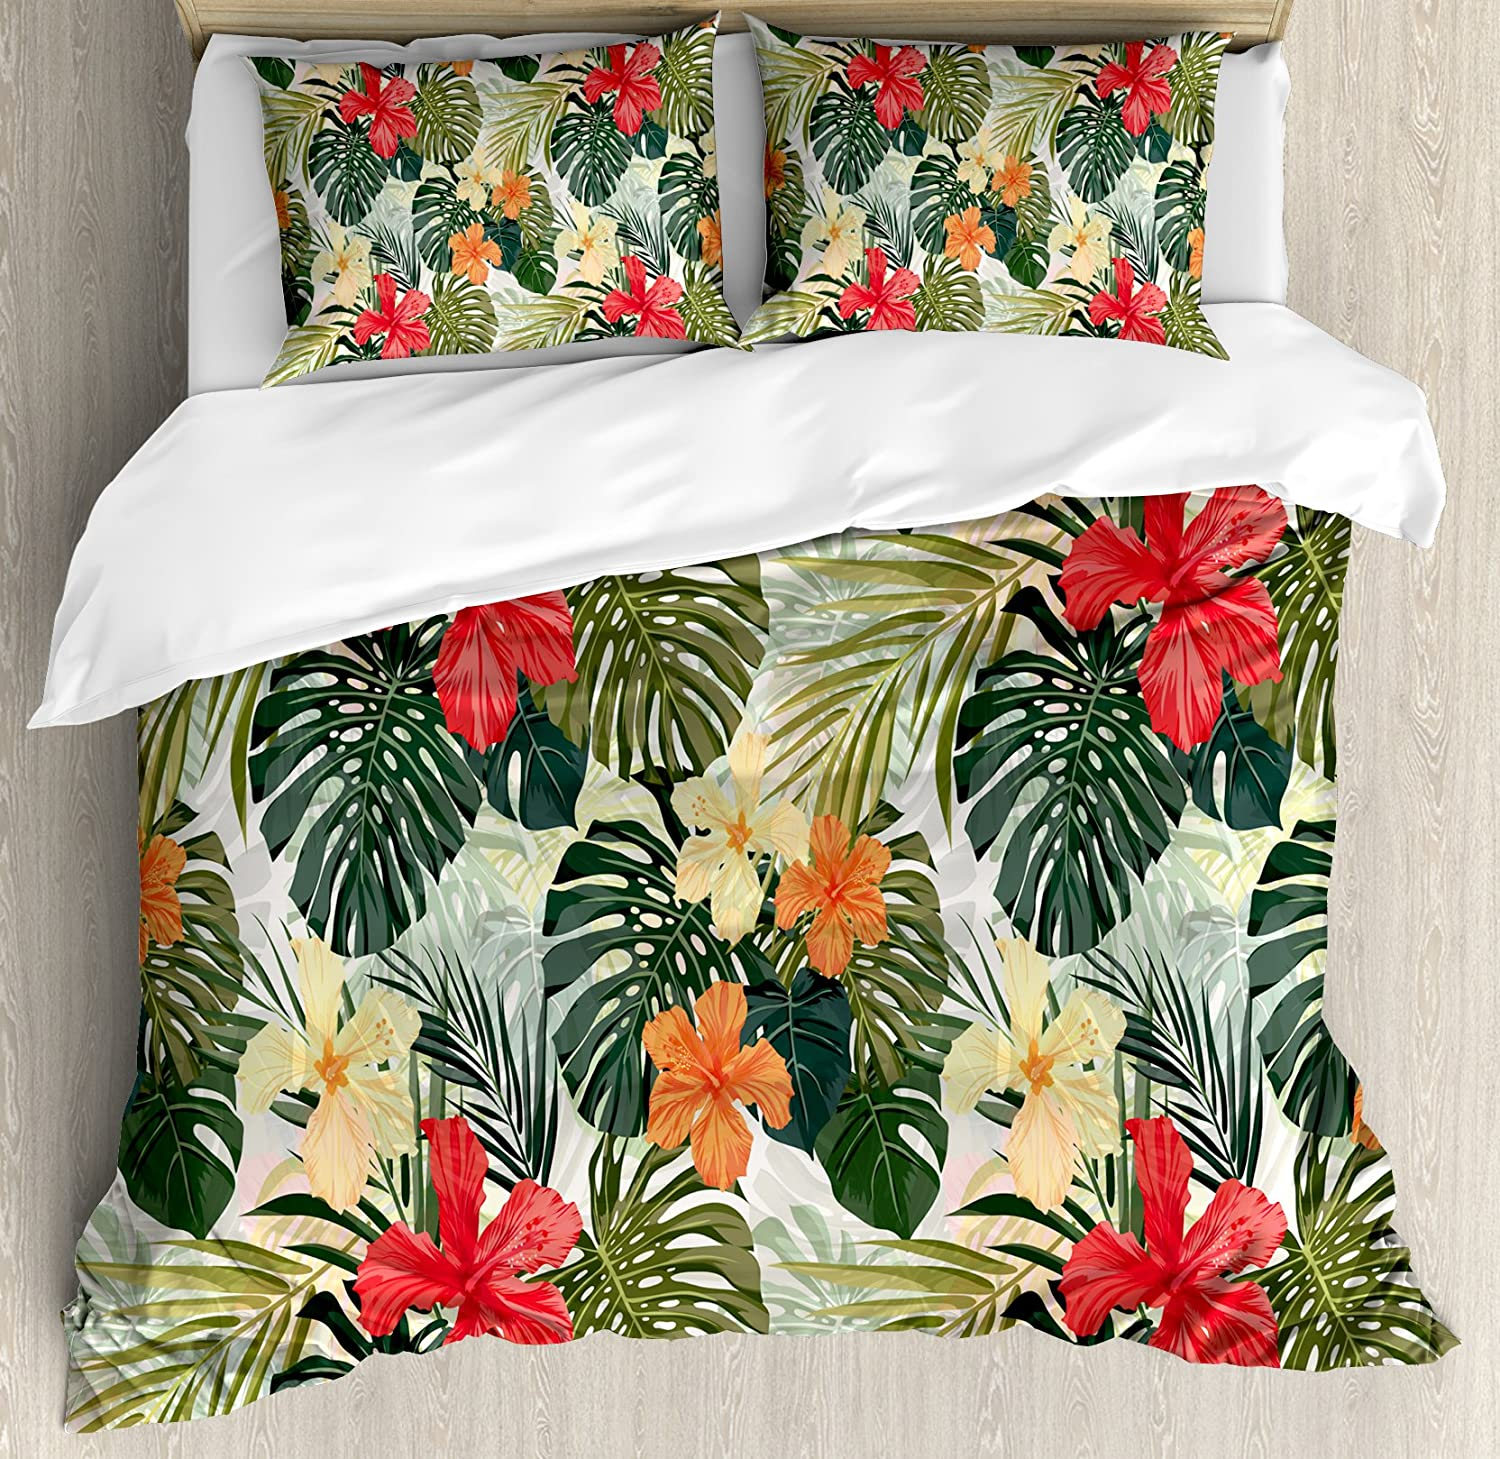 Hawaiian Summer Tropical Island Vegetation Leaves with Hibiscus Flowers